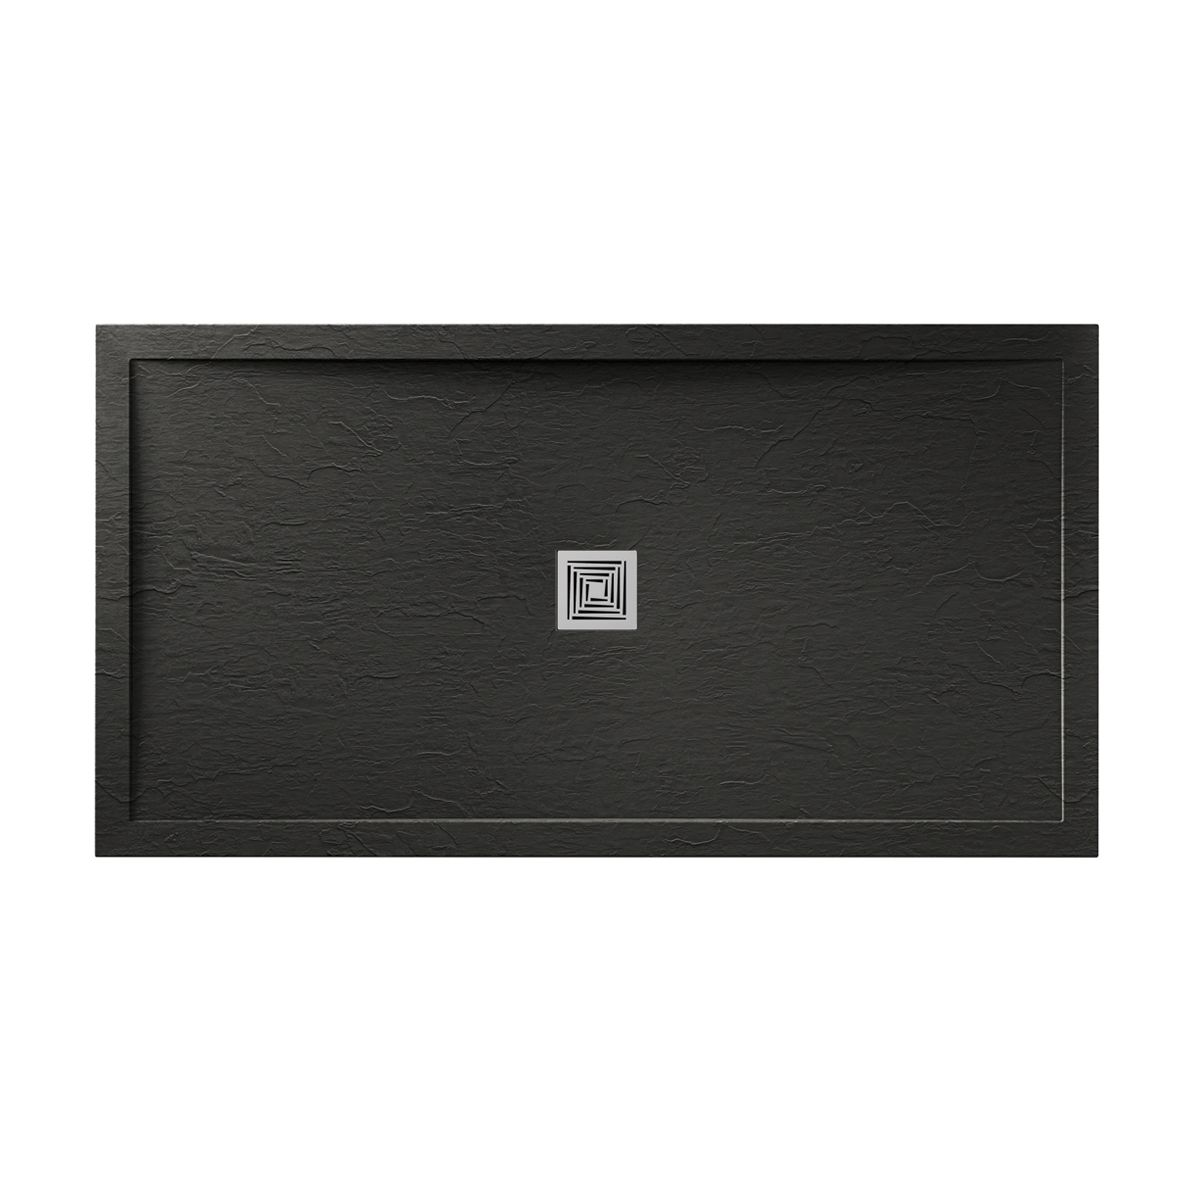 Aquadart Black Slate Shower Tray 1500 x 700